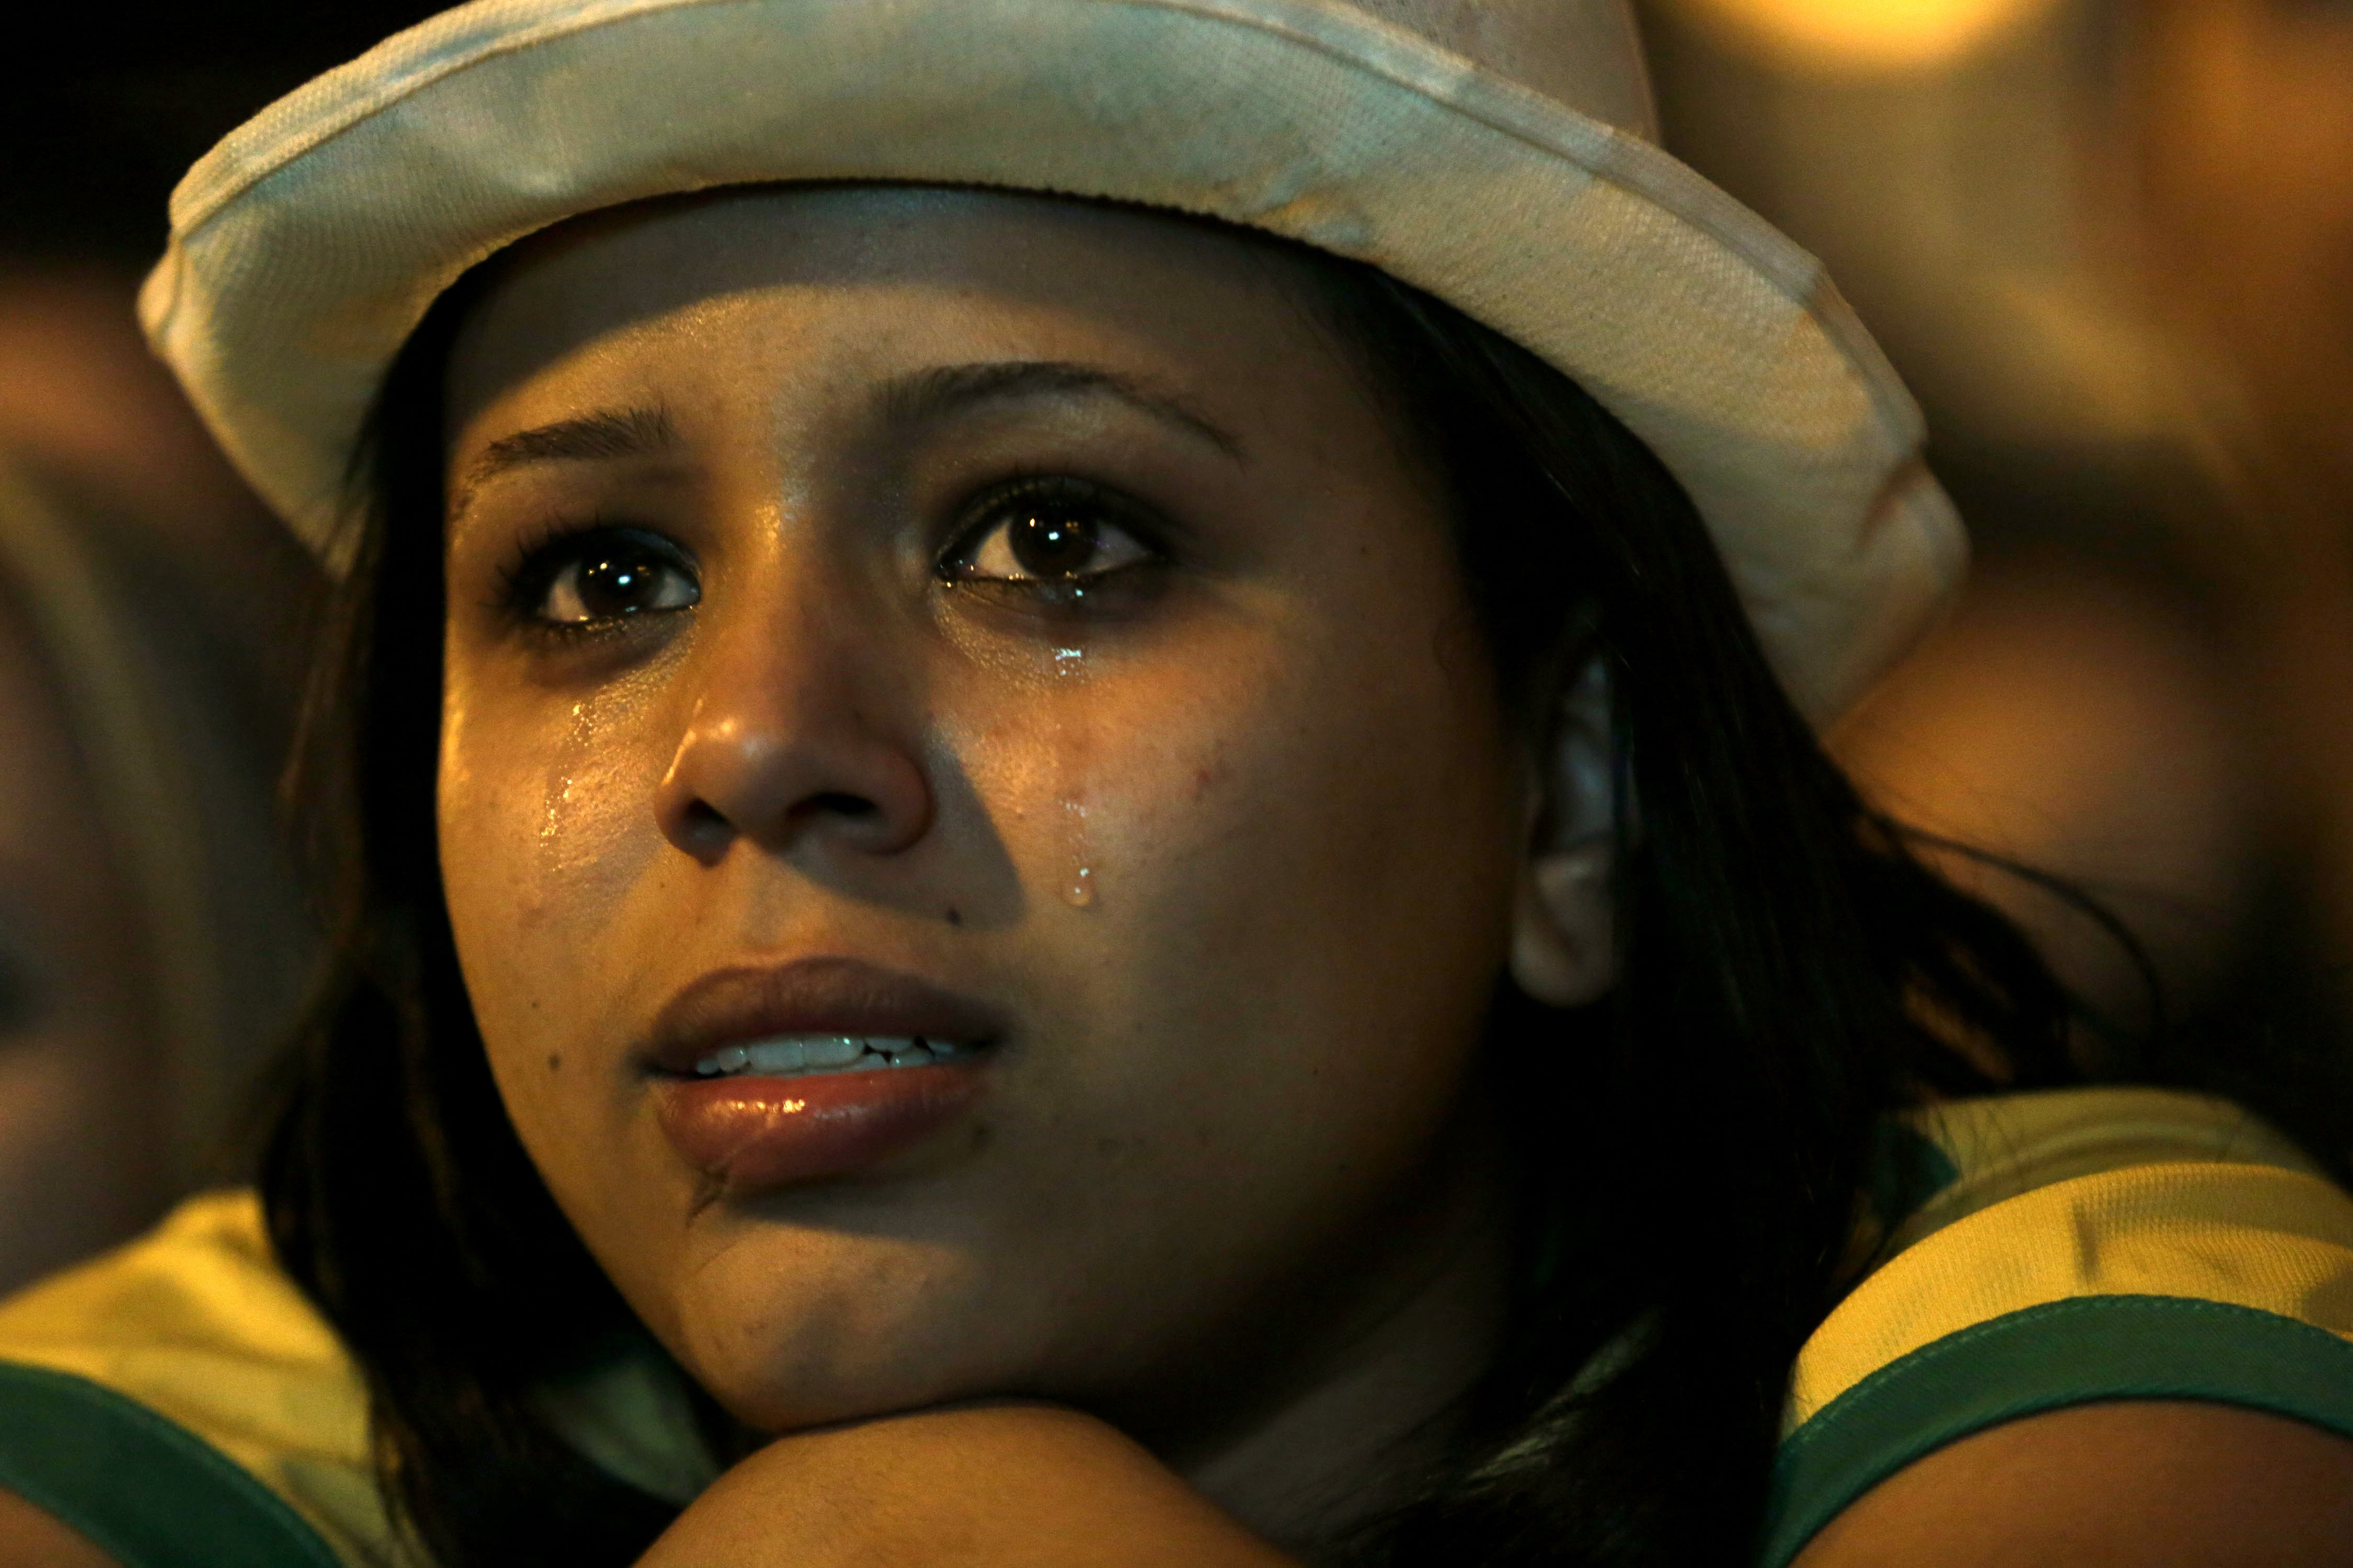 A Brazil soccer fan cries as she watches her team lose to Germany in Belo Horizonte, Brazil on July 8, 2014.